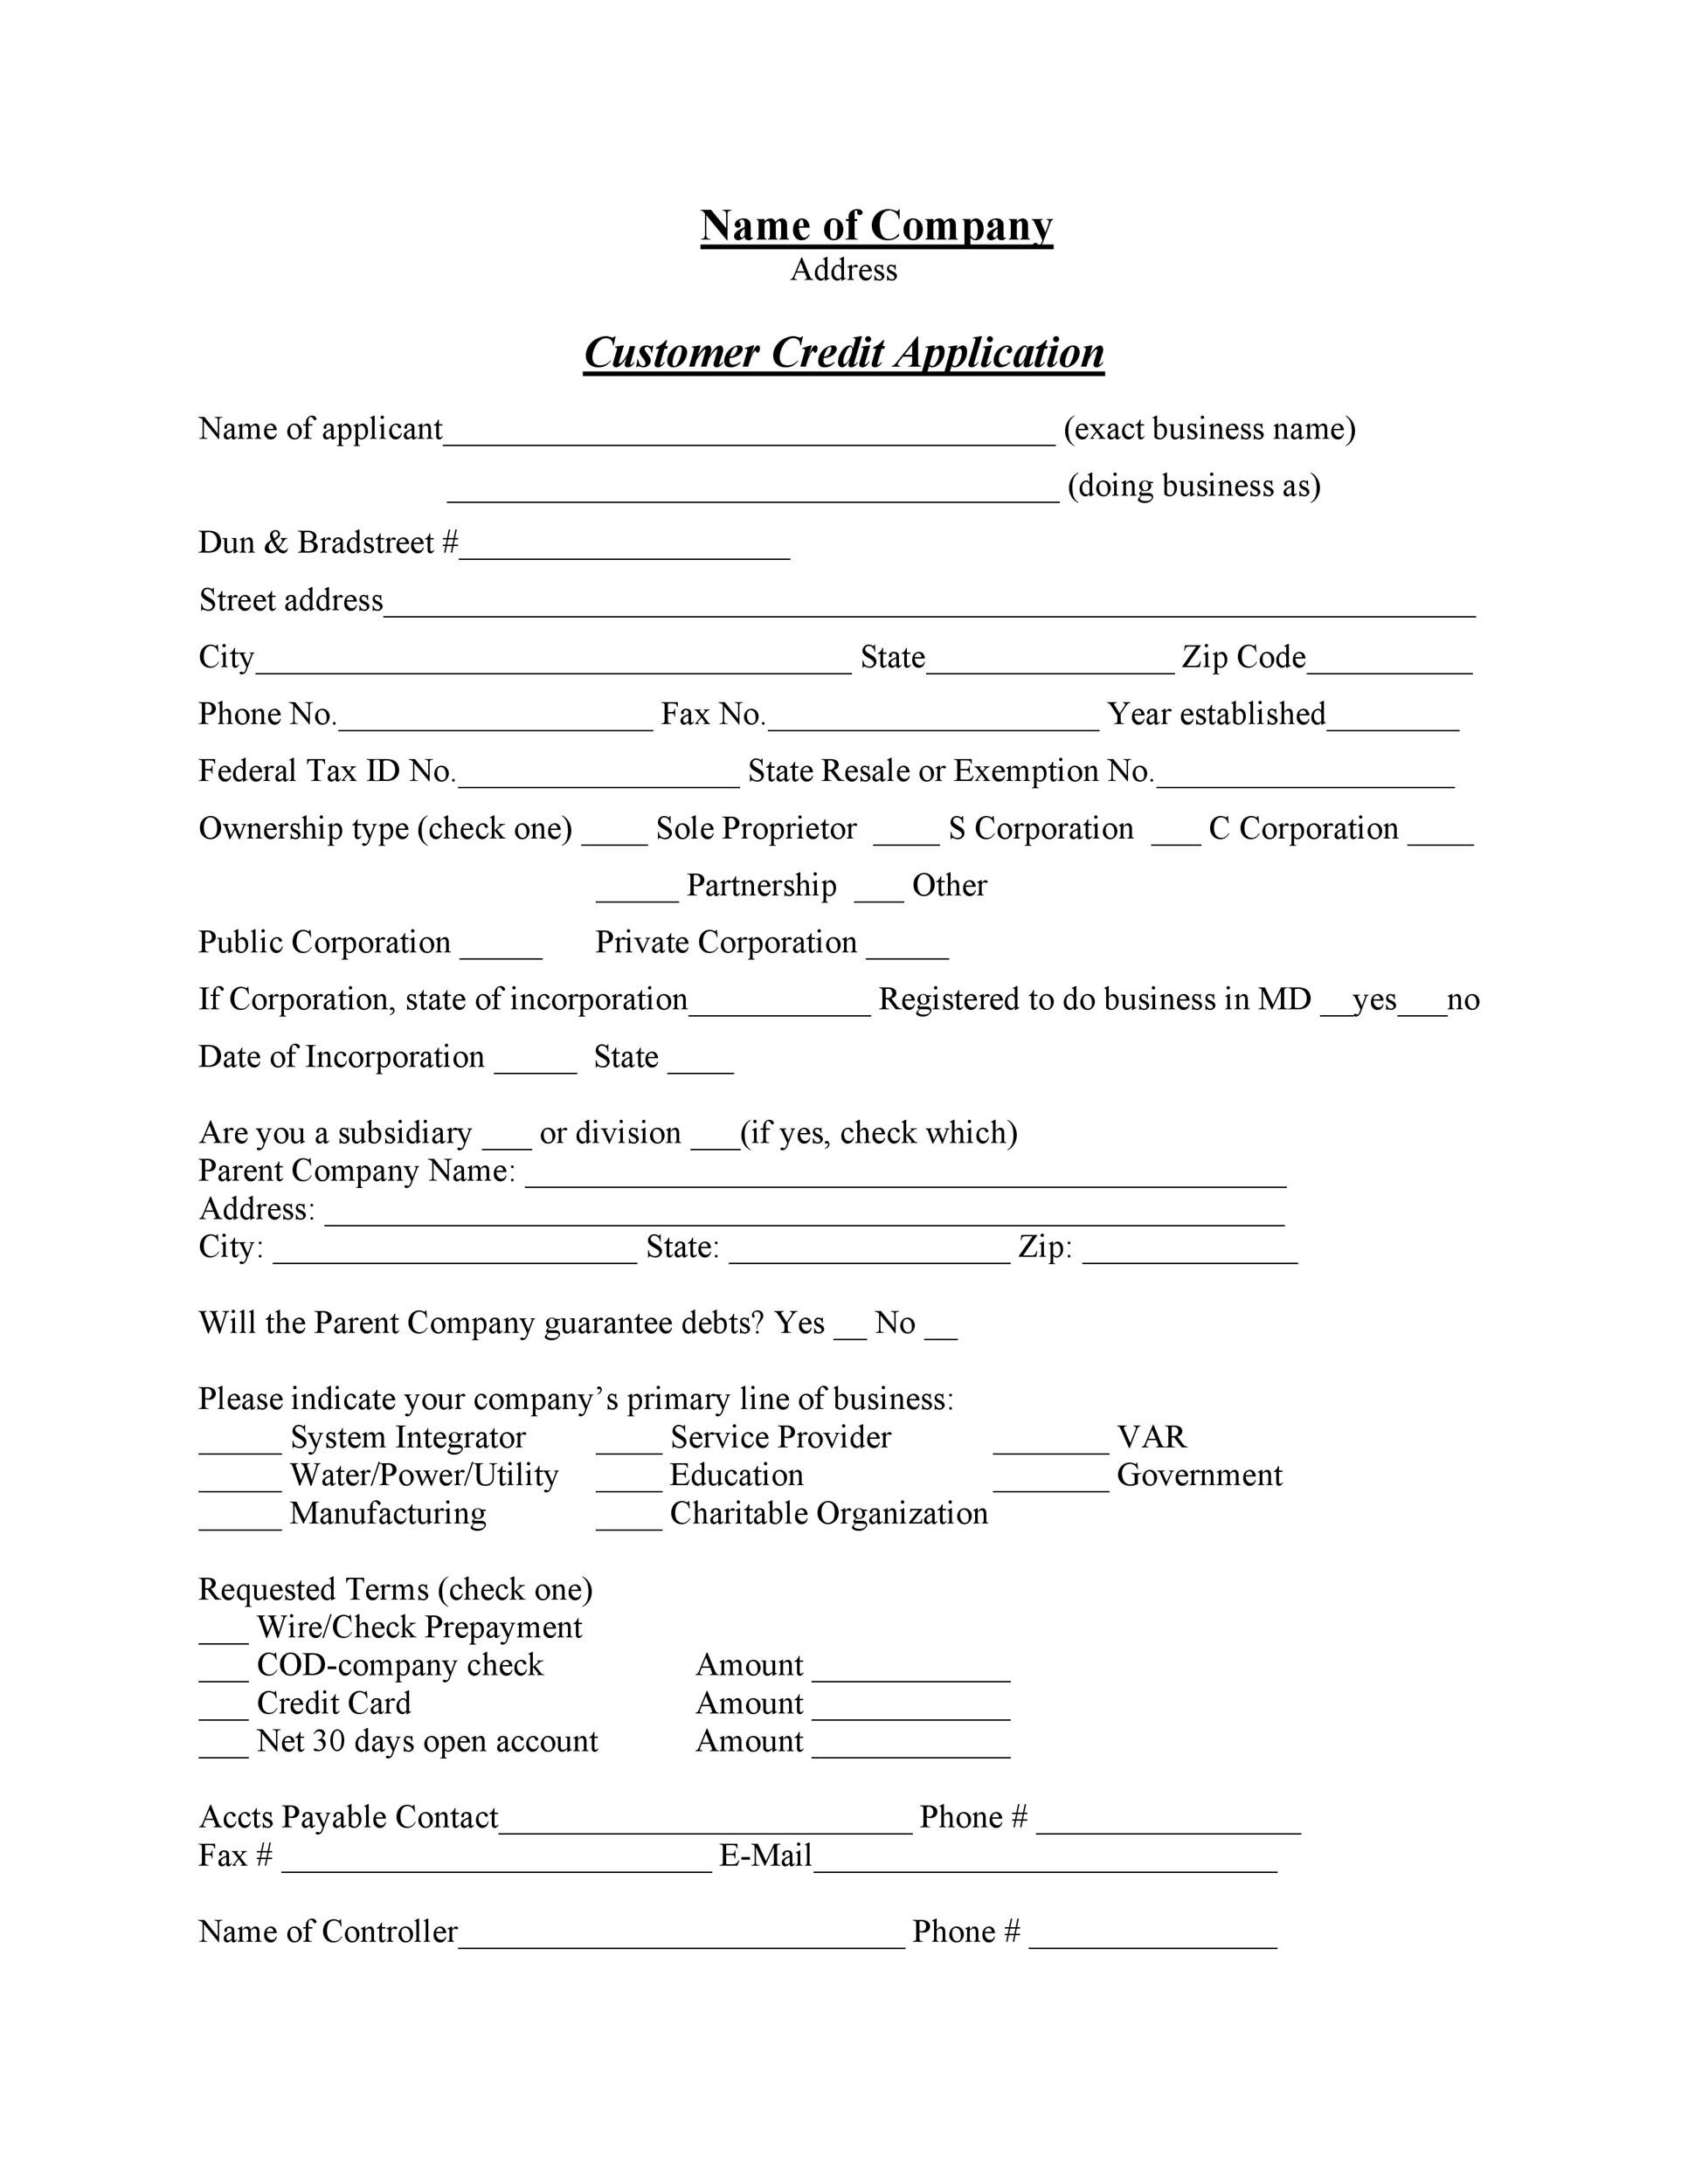 40 free credit application form templates samples free credit application form 08 cheaphphosting